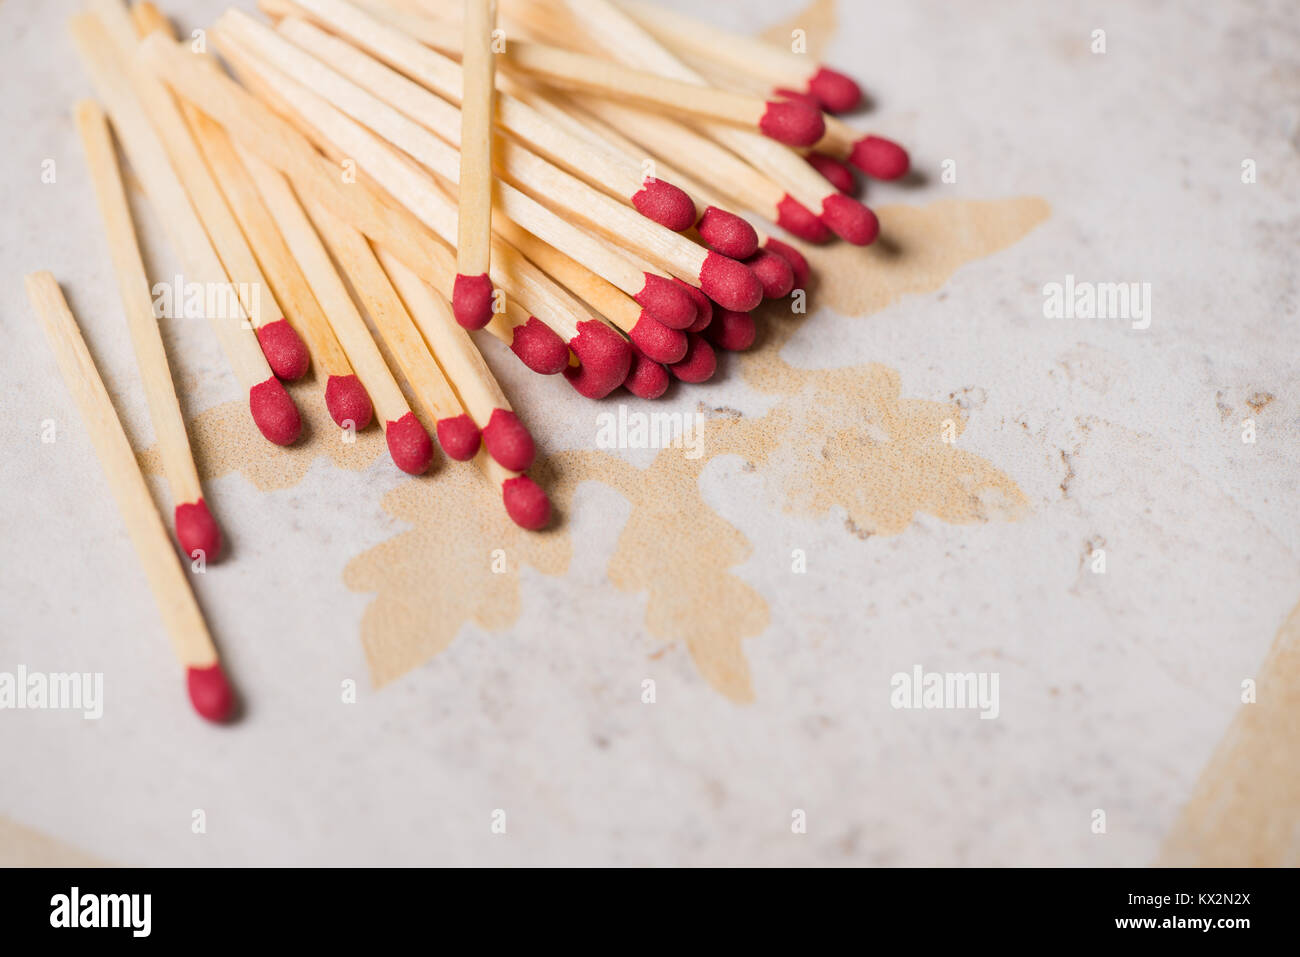 Matches on tile or ceramic background with copy space. - Stock Image